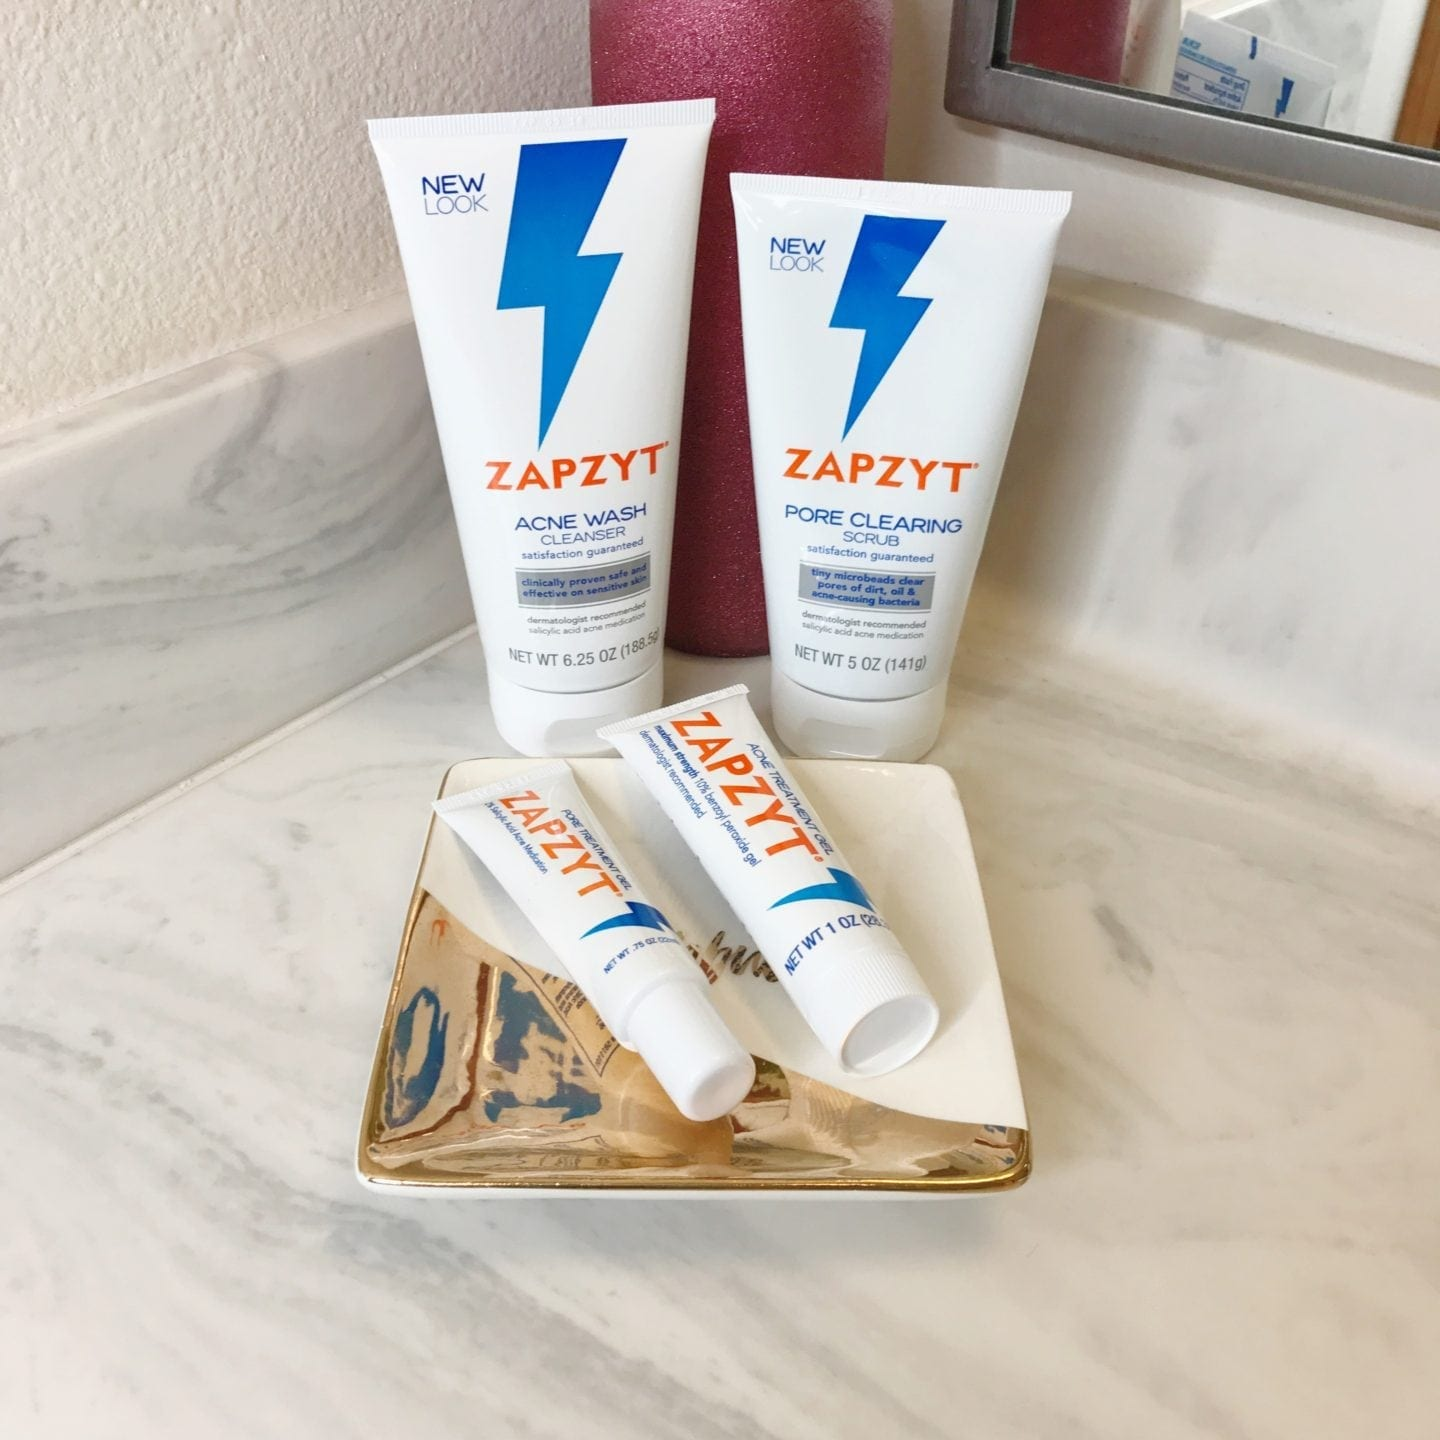 Battle Adult Acne with ZAPZYT